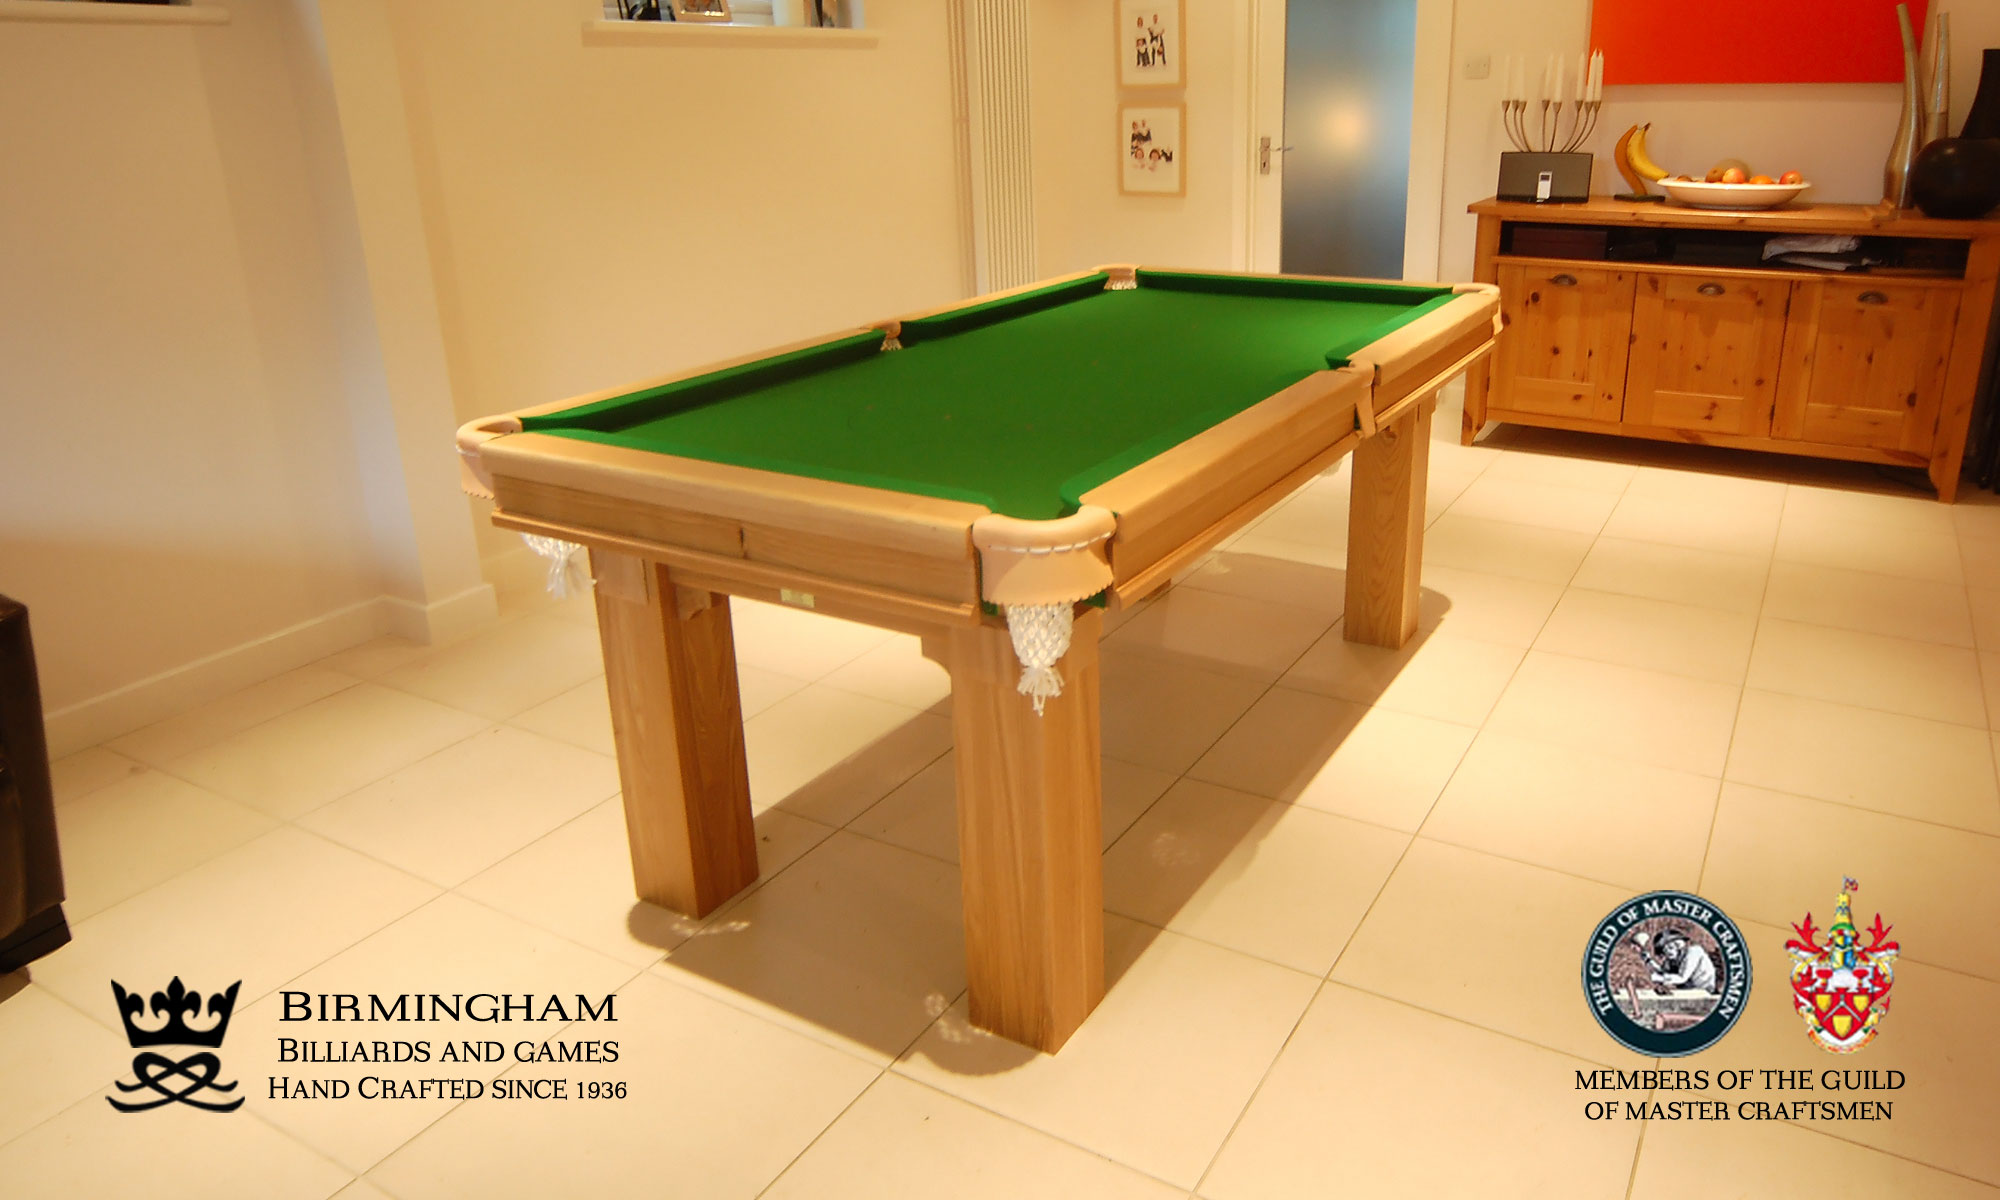 The Retro-luxury handmade pool table in light oak and olive green baize,made in solid oak